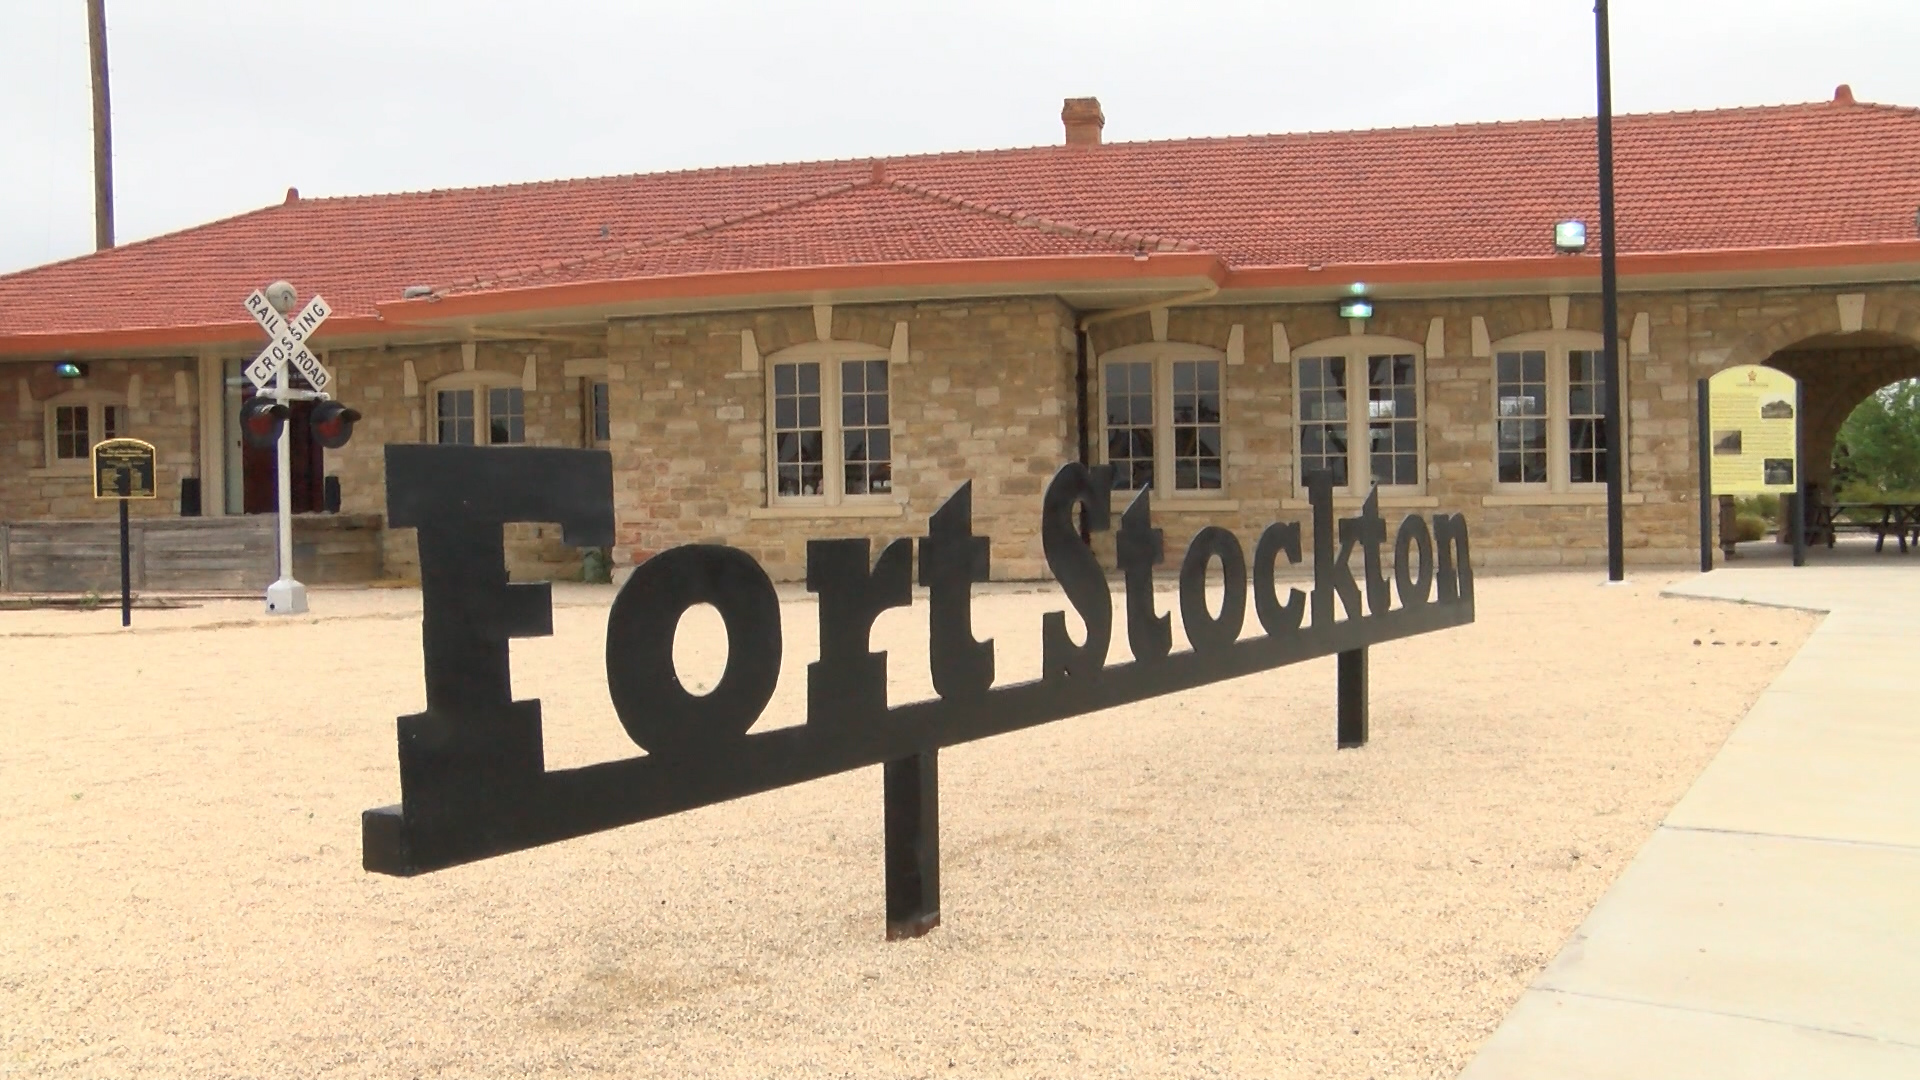 FORT STOCKTON SIGN _1461092407575.jpg